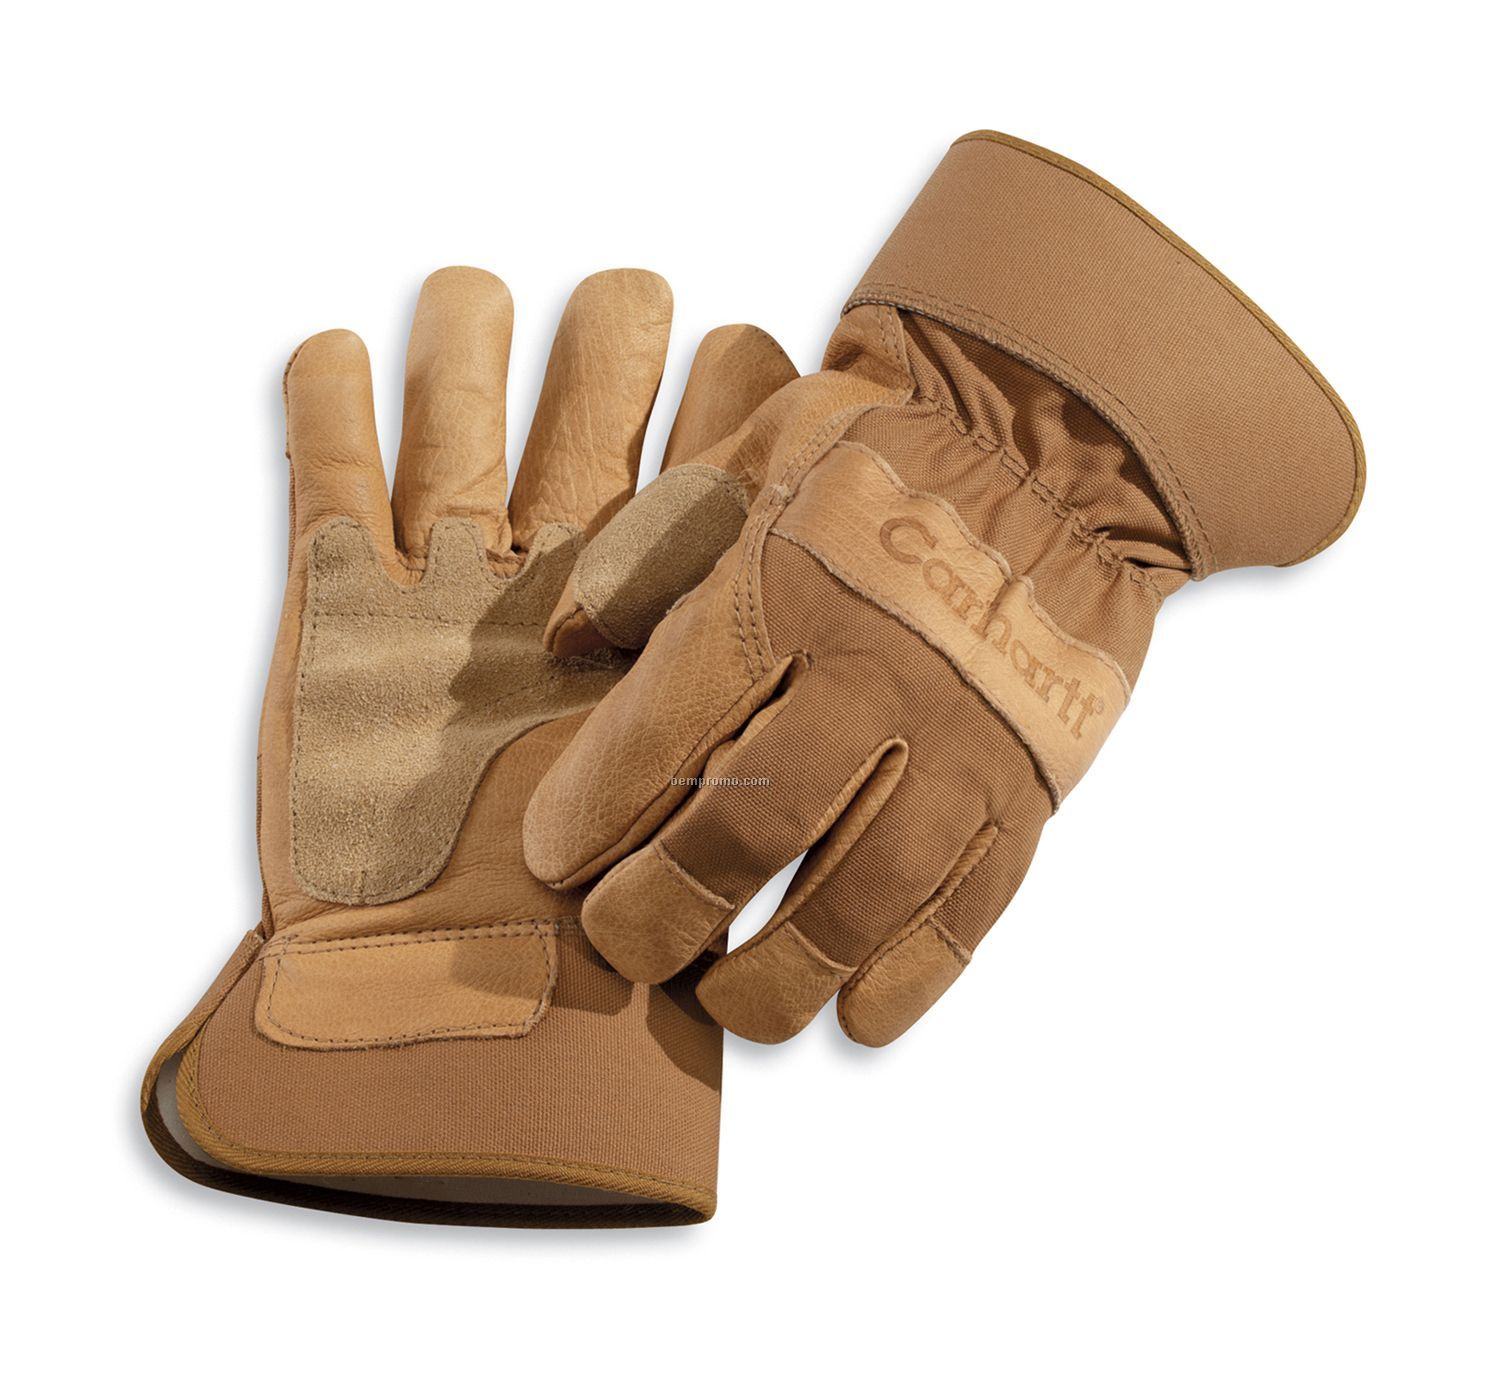 Mens leather insulated gloves -  Carhartt Leather Gloves Gloves Carhartt Insulated